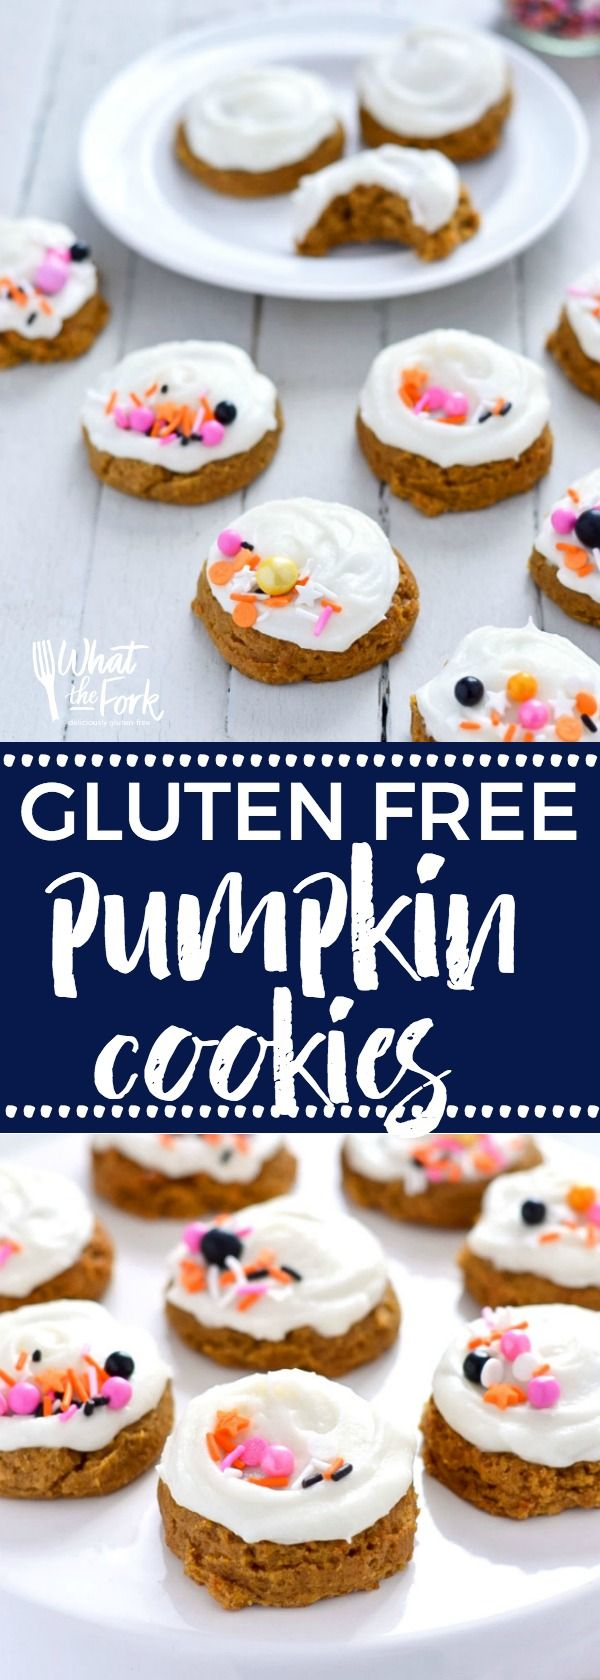 Gluten Free Pumpkin Cookies with Cream Cheese Frosting (dairy free option) are pillowy soft and melt in your mouth.